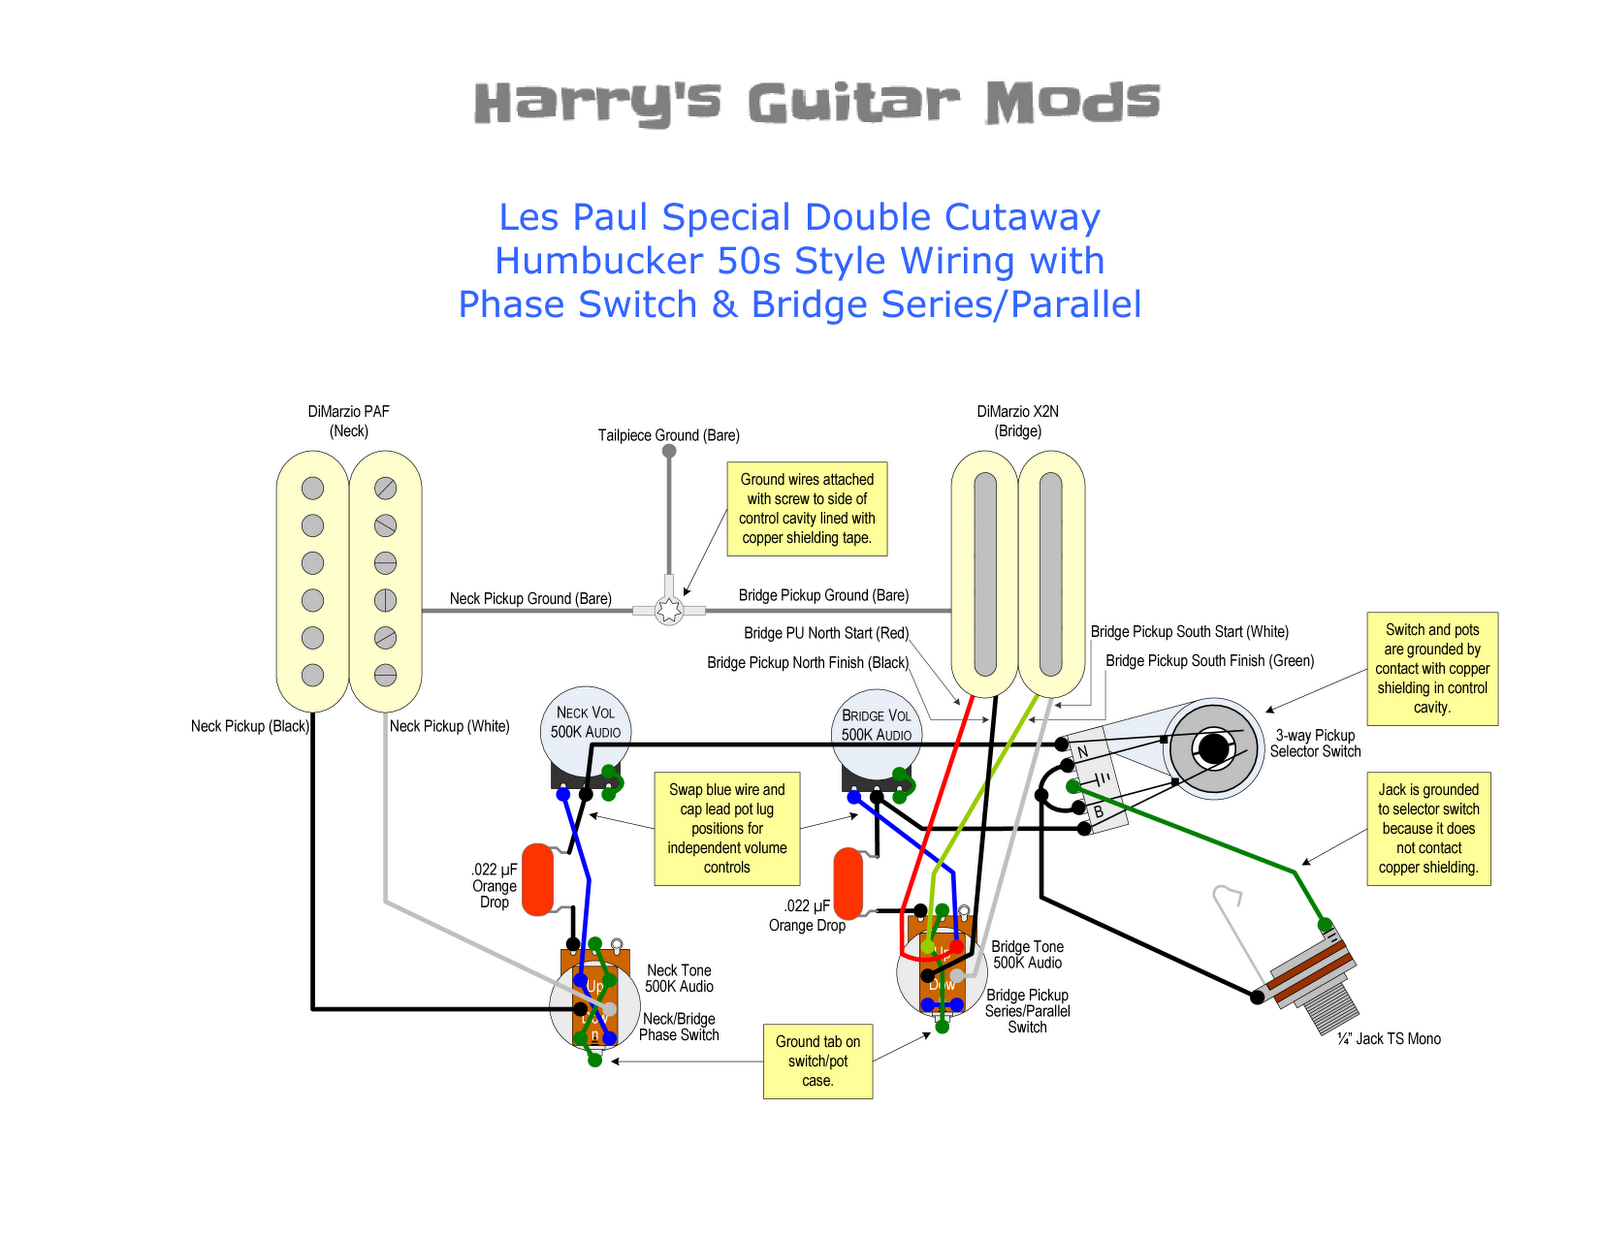 LPS+Wiring+Diagram harry's guitar mods controls wiring upgrade pot of gold wiring diagram at gsmx.co